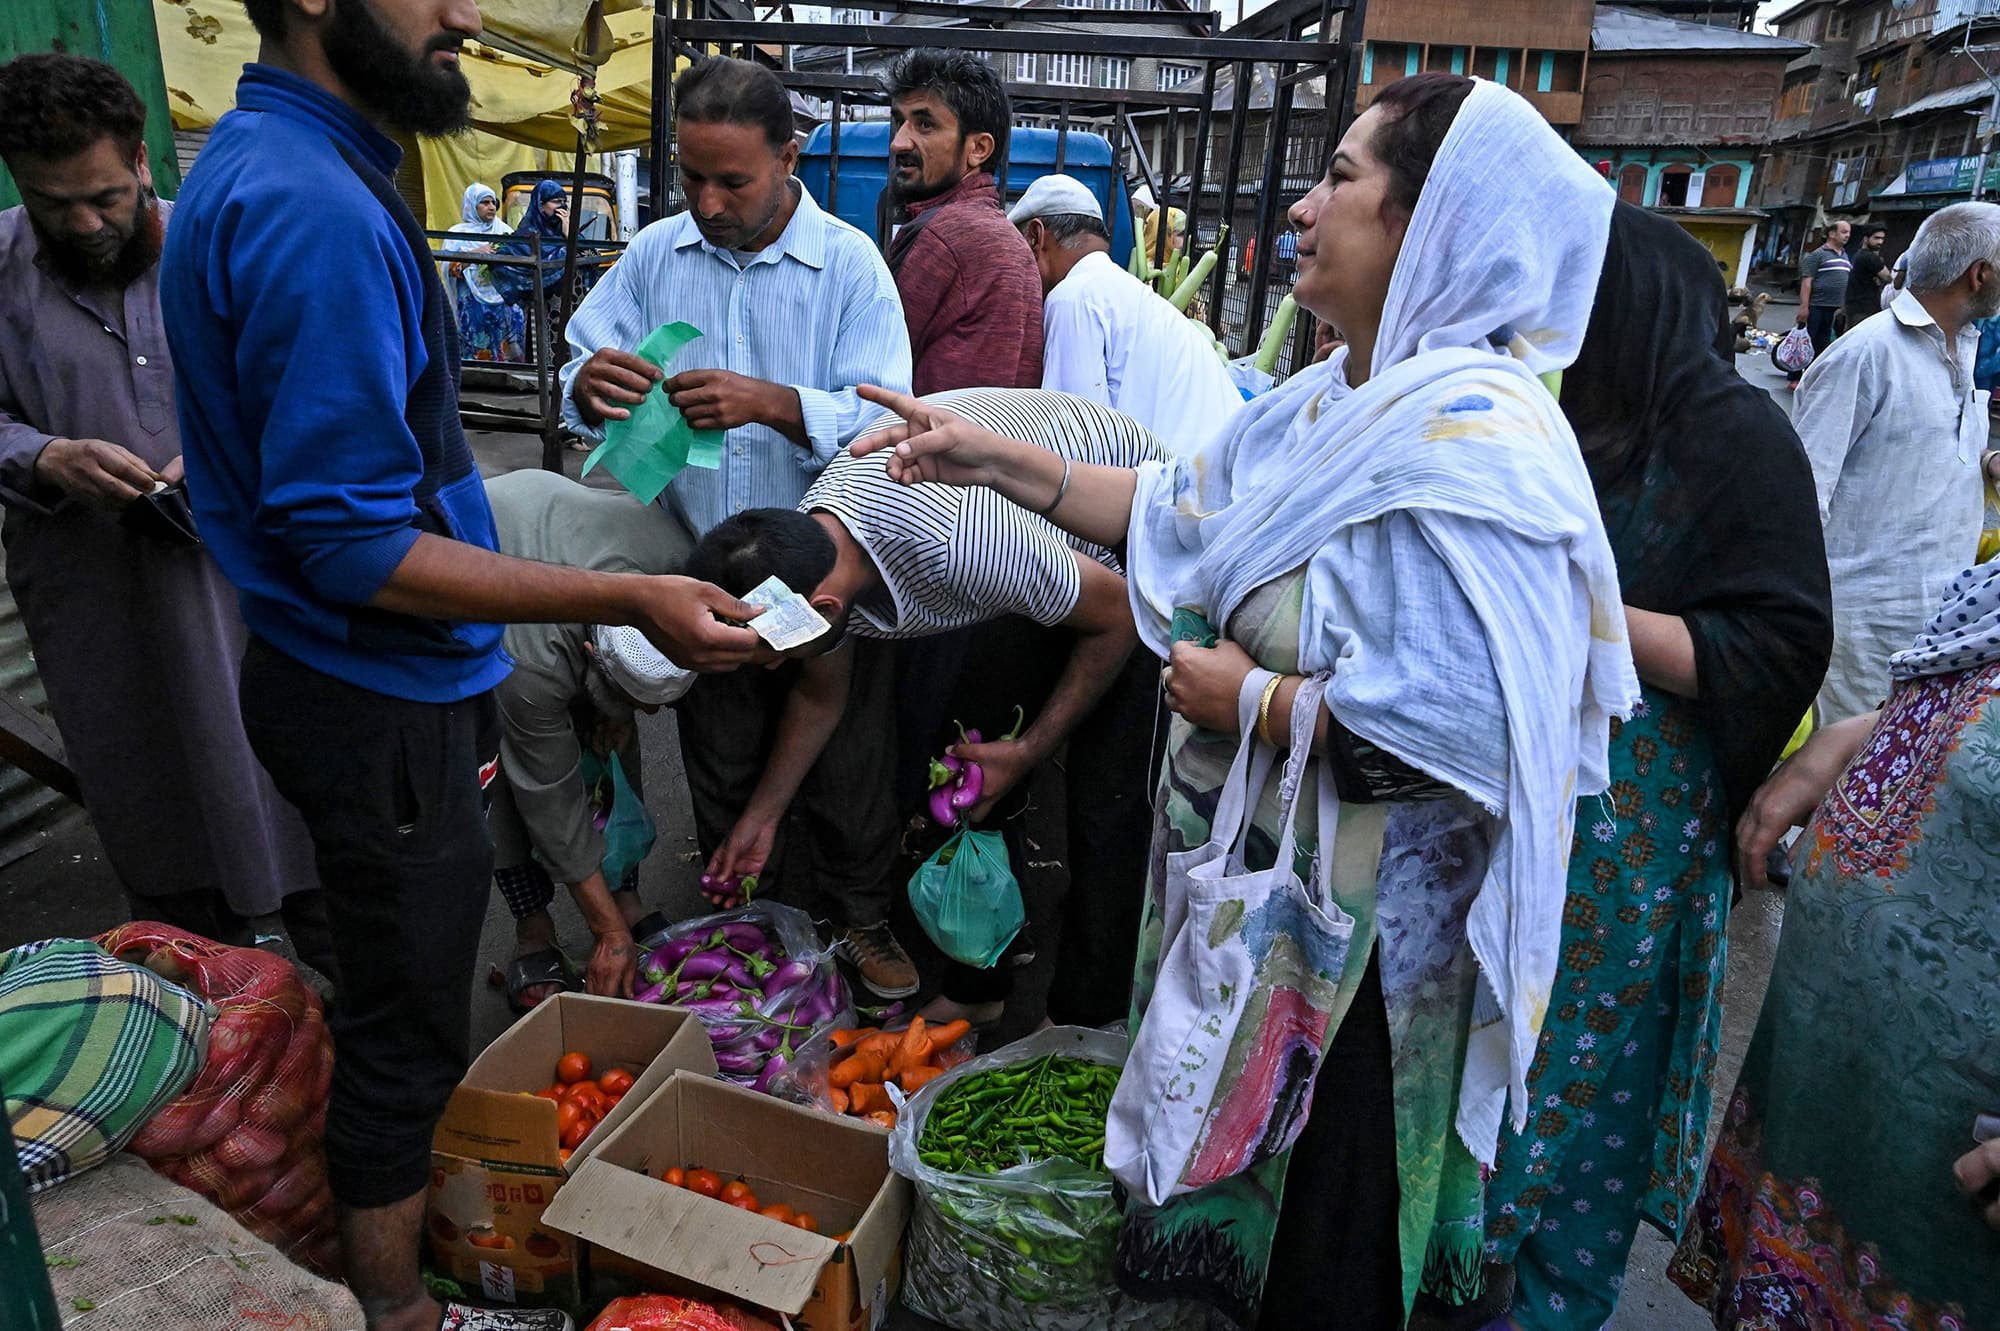 Kashmiris purchase food and vegetables during a lockdown in Srinagar. ─ AFP